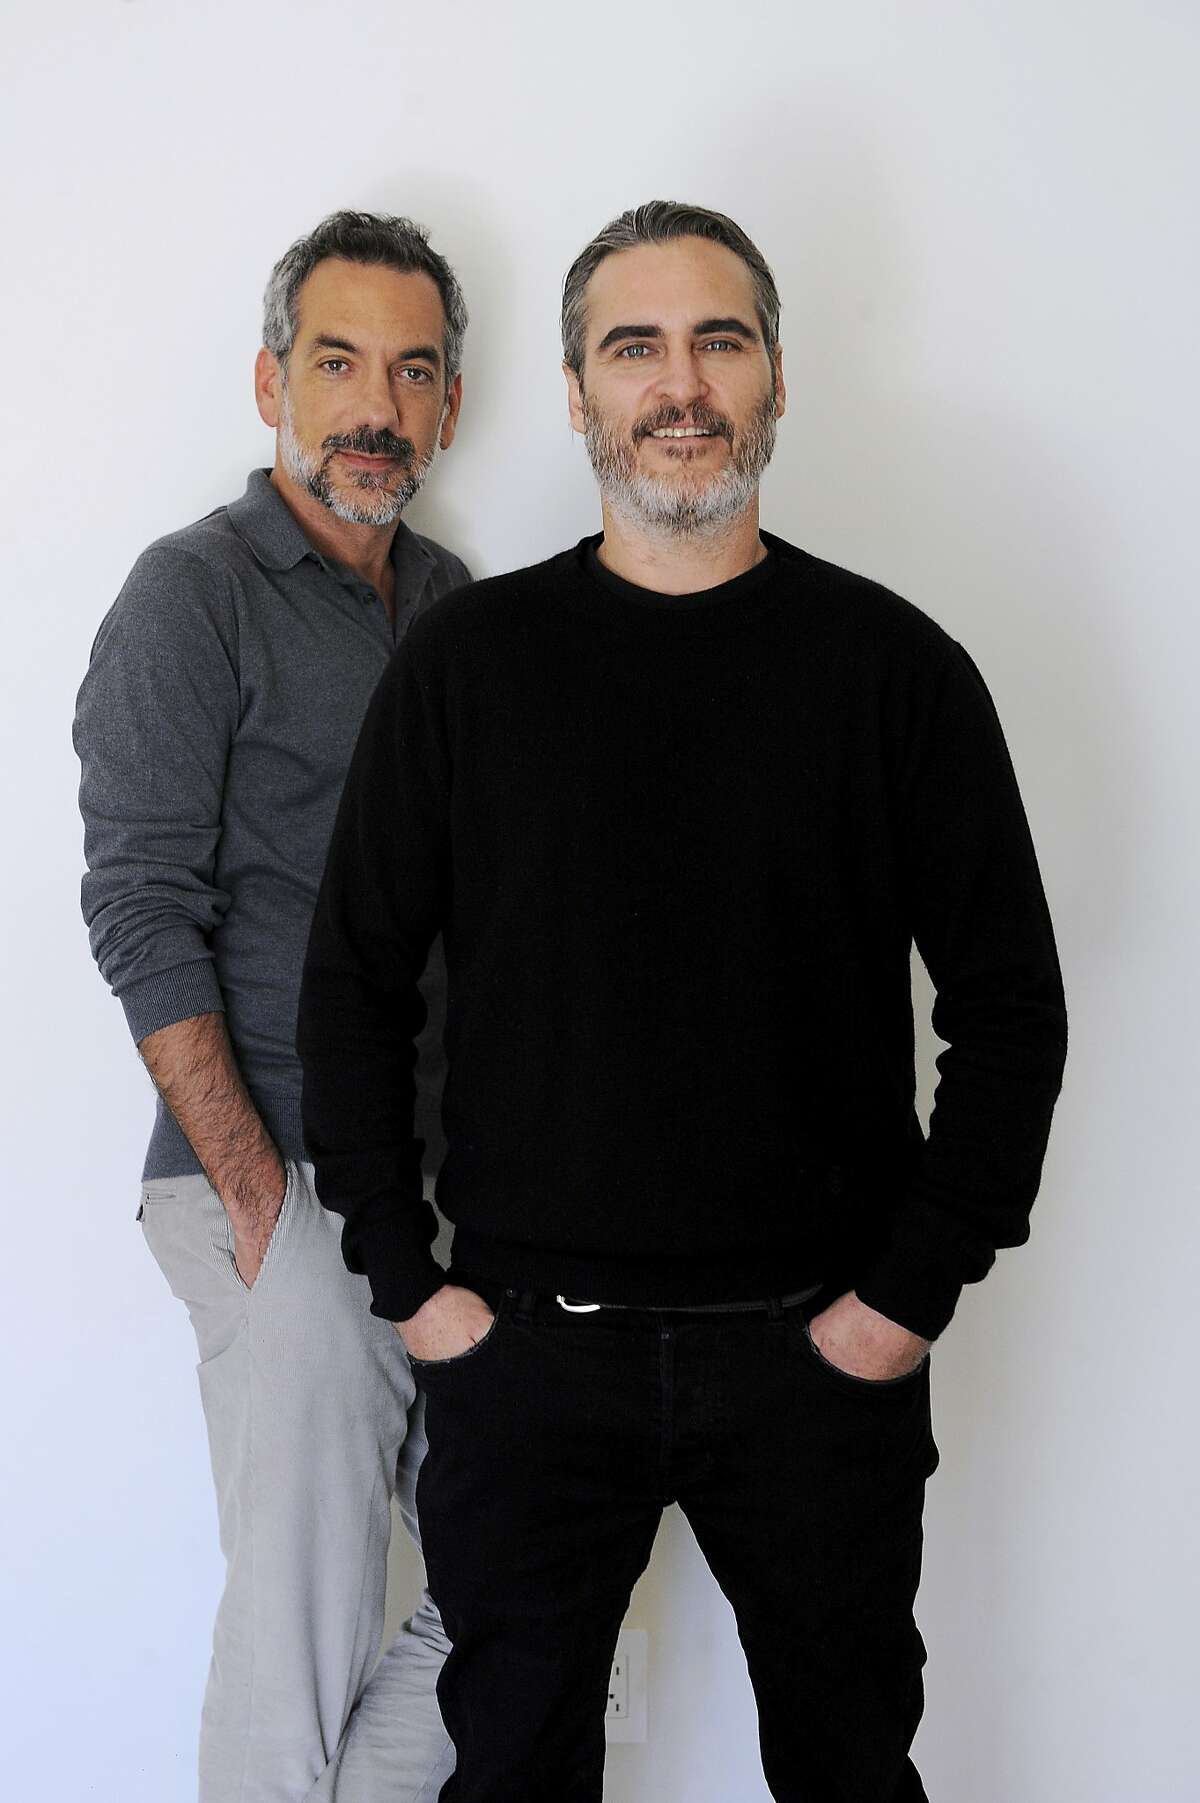 This Sept. 20, 2019 photo shows director Todd Phillips, left, and actor Joaquin Phoenix during a portrait session for the film